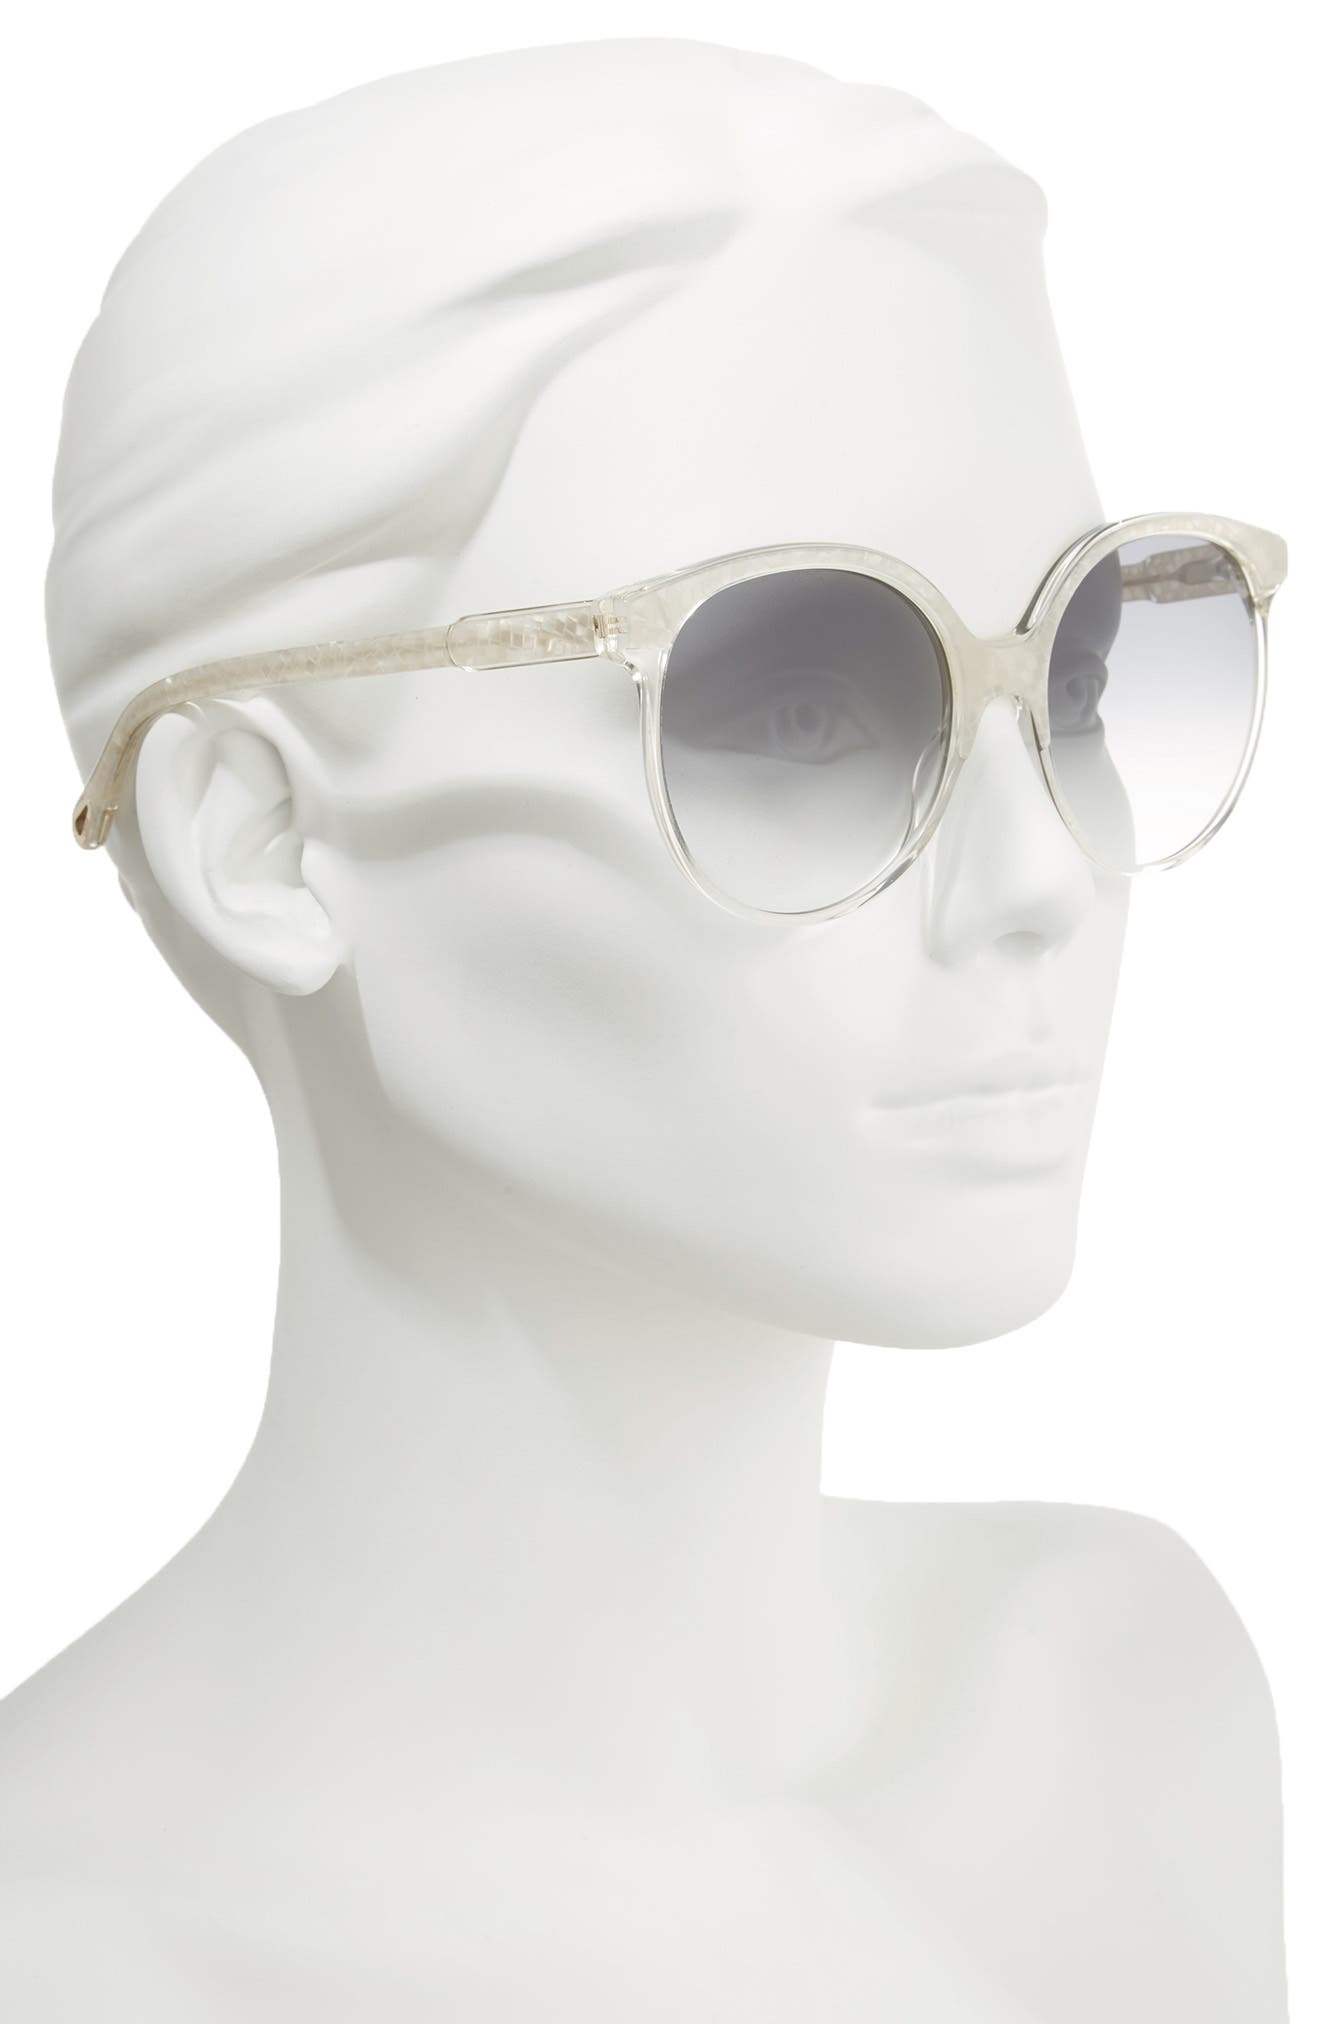 59mm Round Sunglasses,                             Alternate thumbnail 2, color,                             Pearl/ Champagne